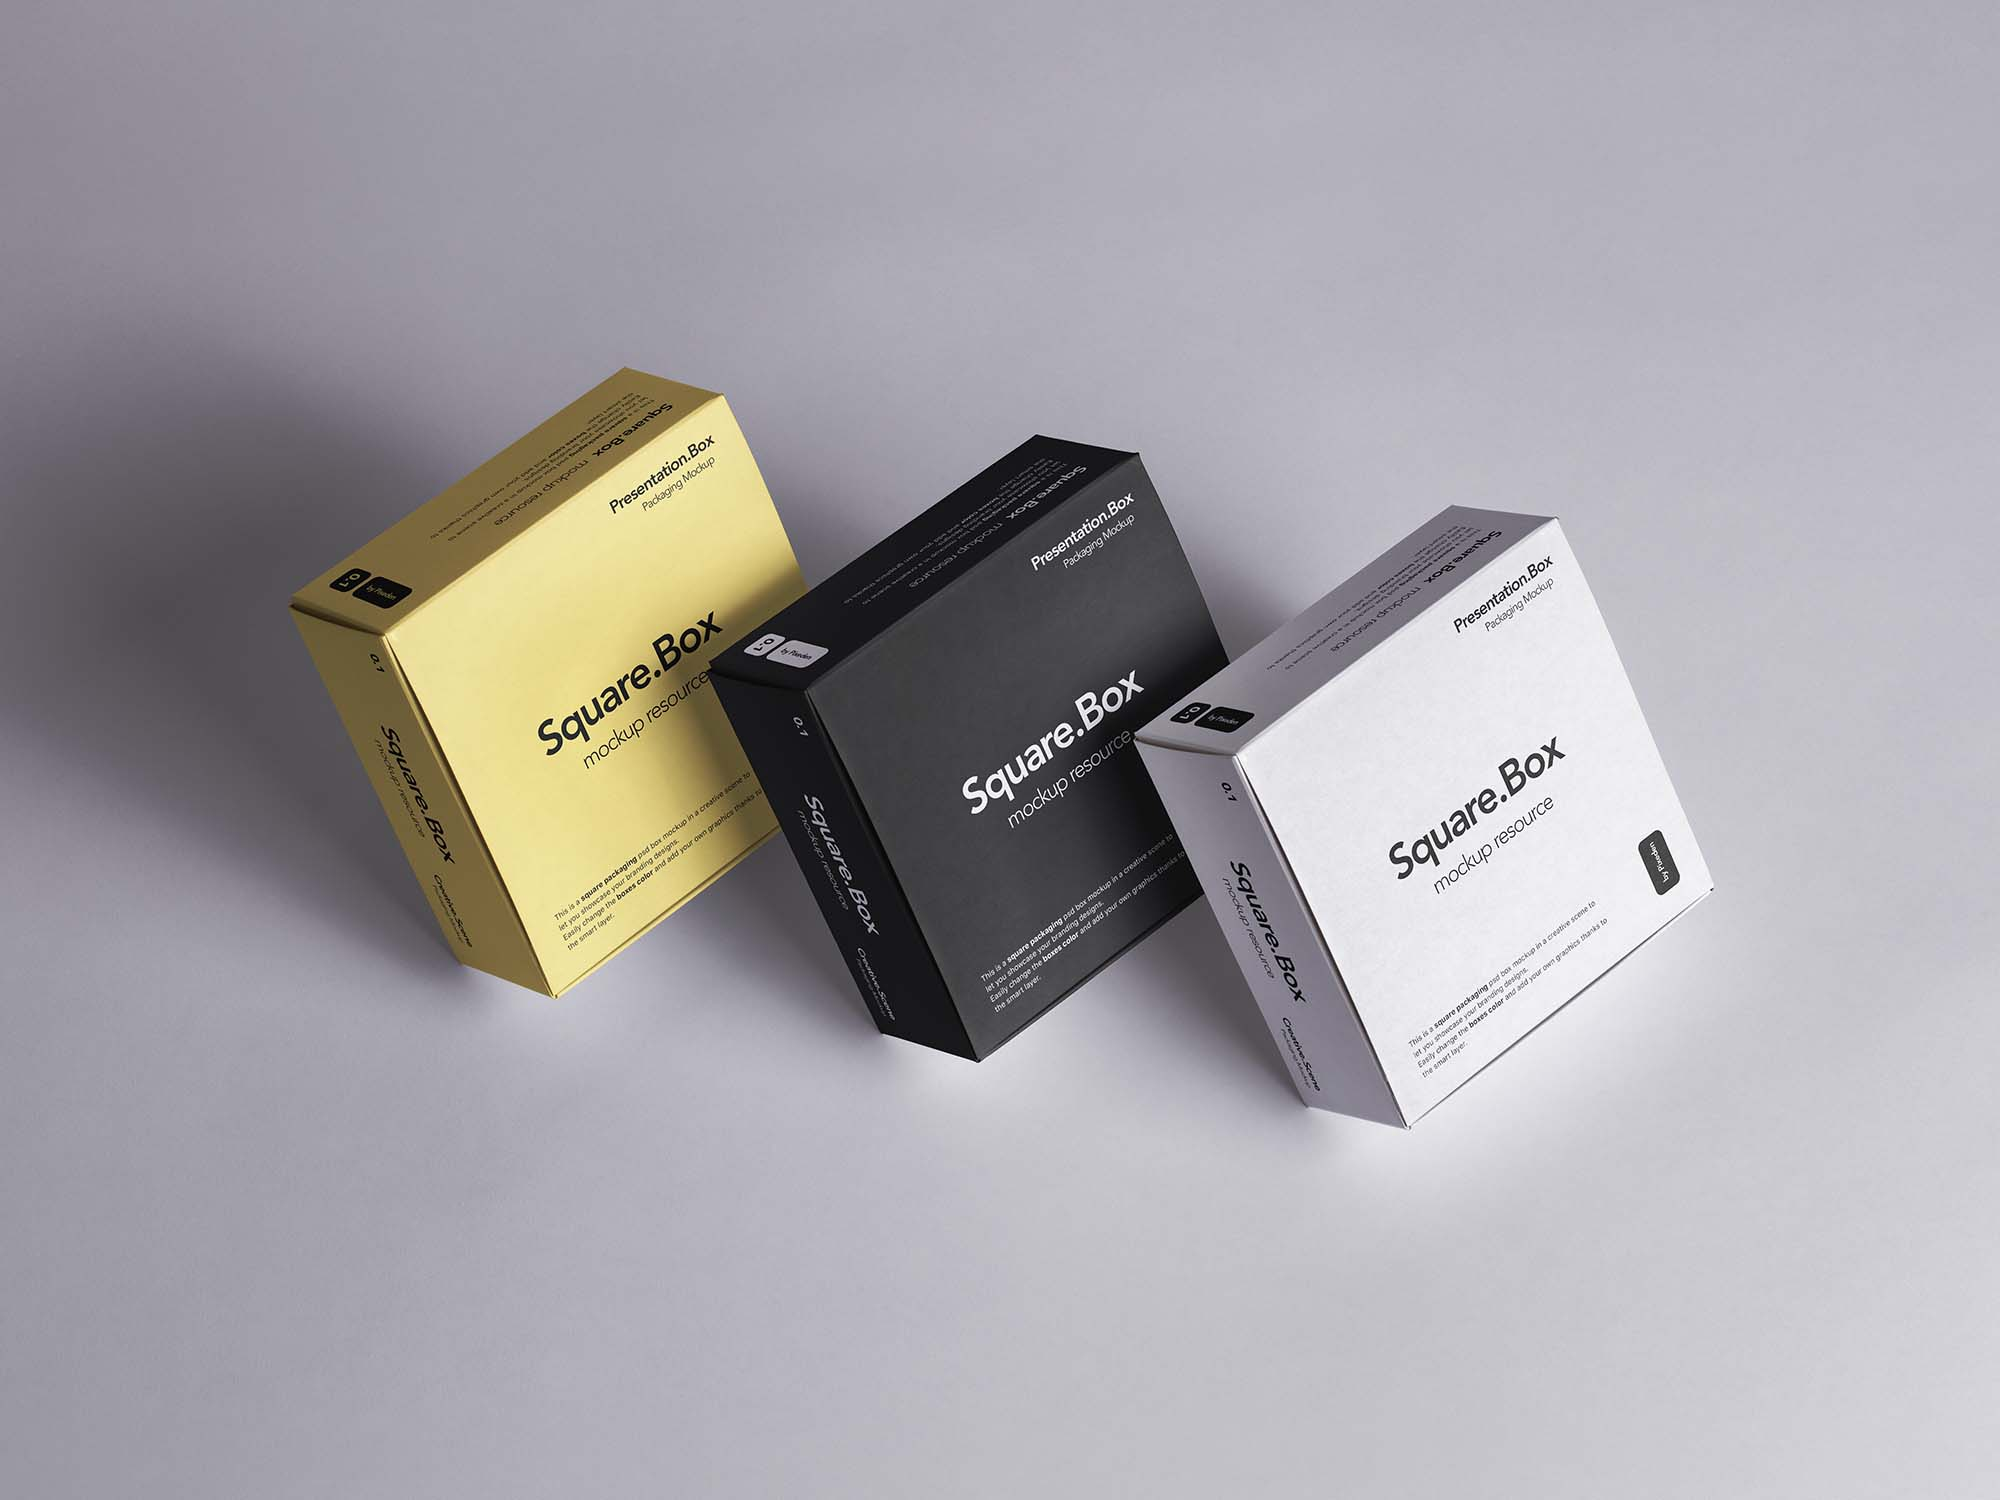 Square Boxes Packaging Mockup Psd